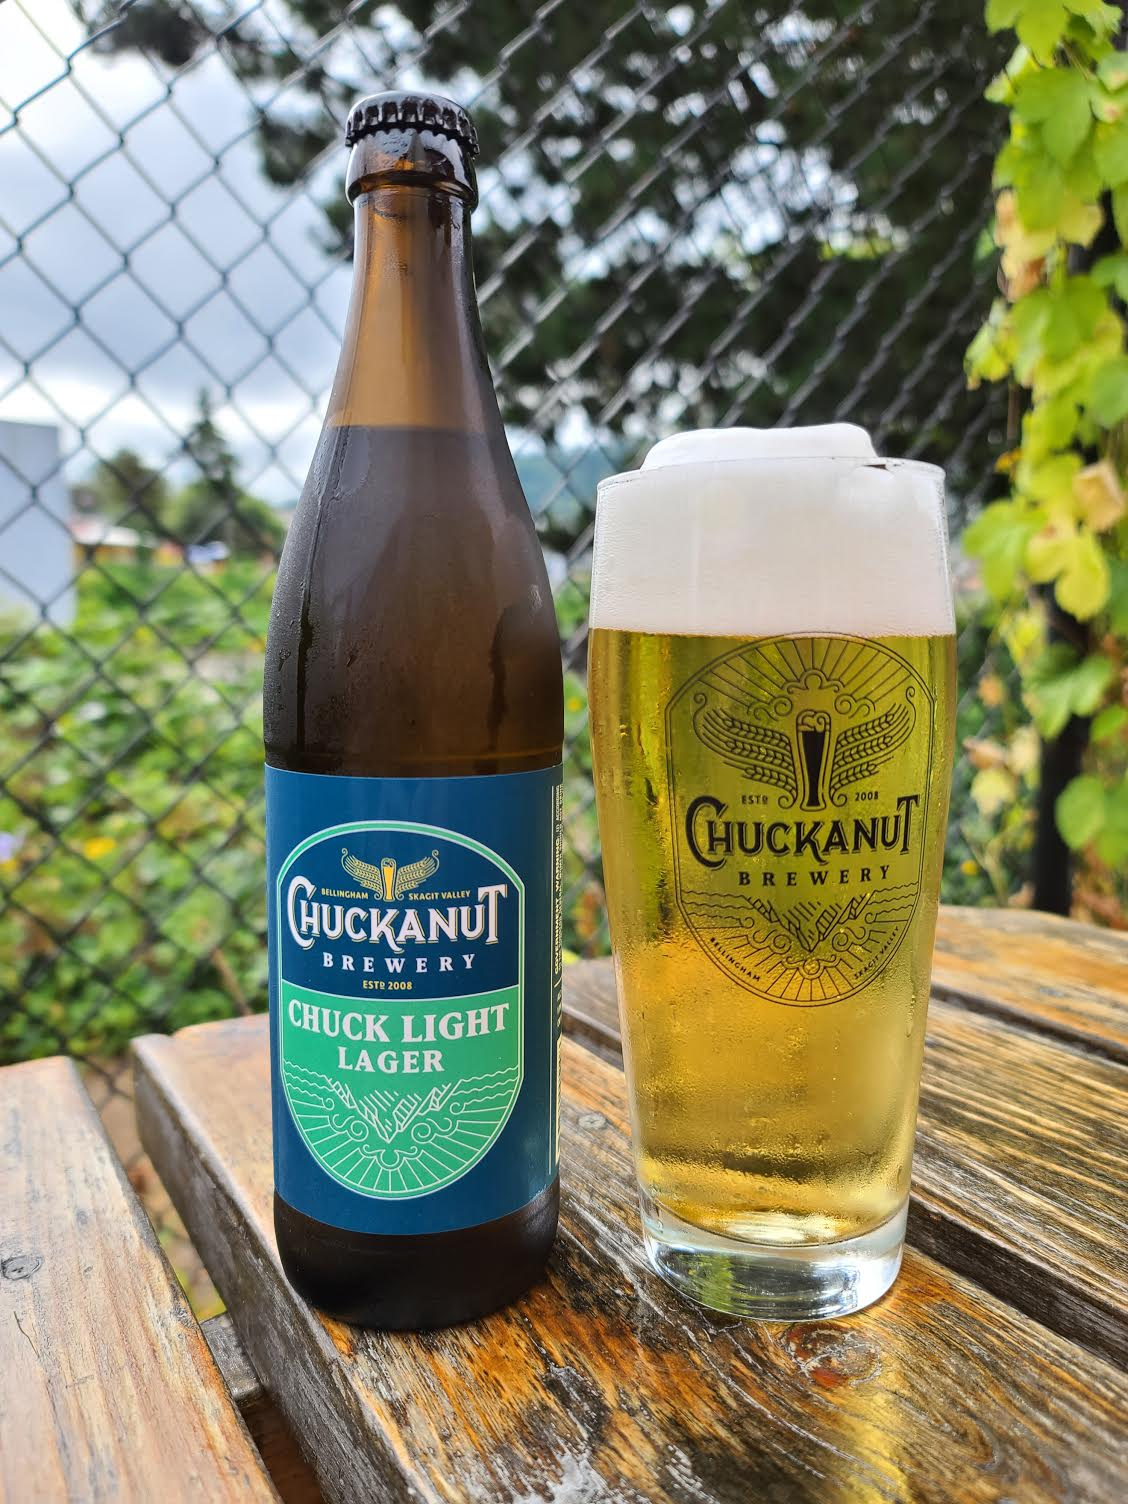 image of Chuck Light Lager courtesy of Chuckanut Brewery